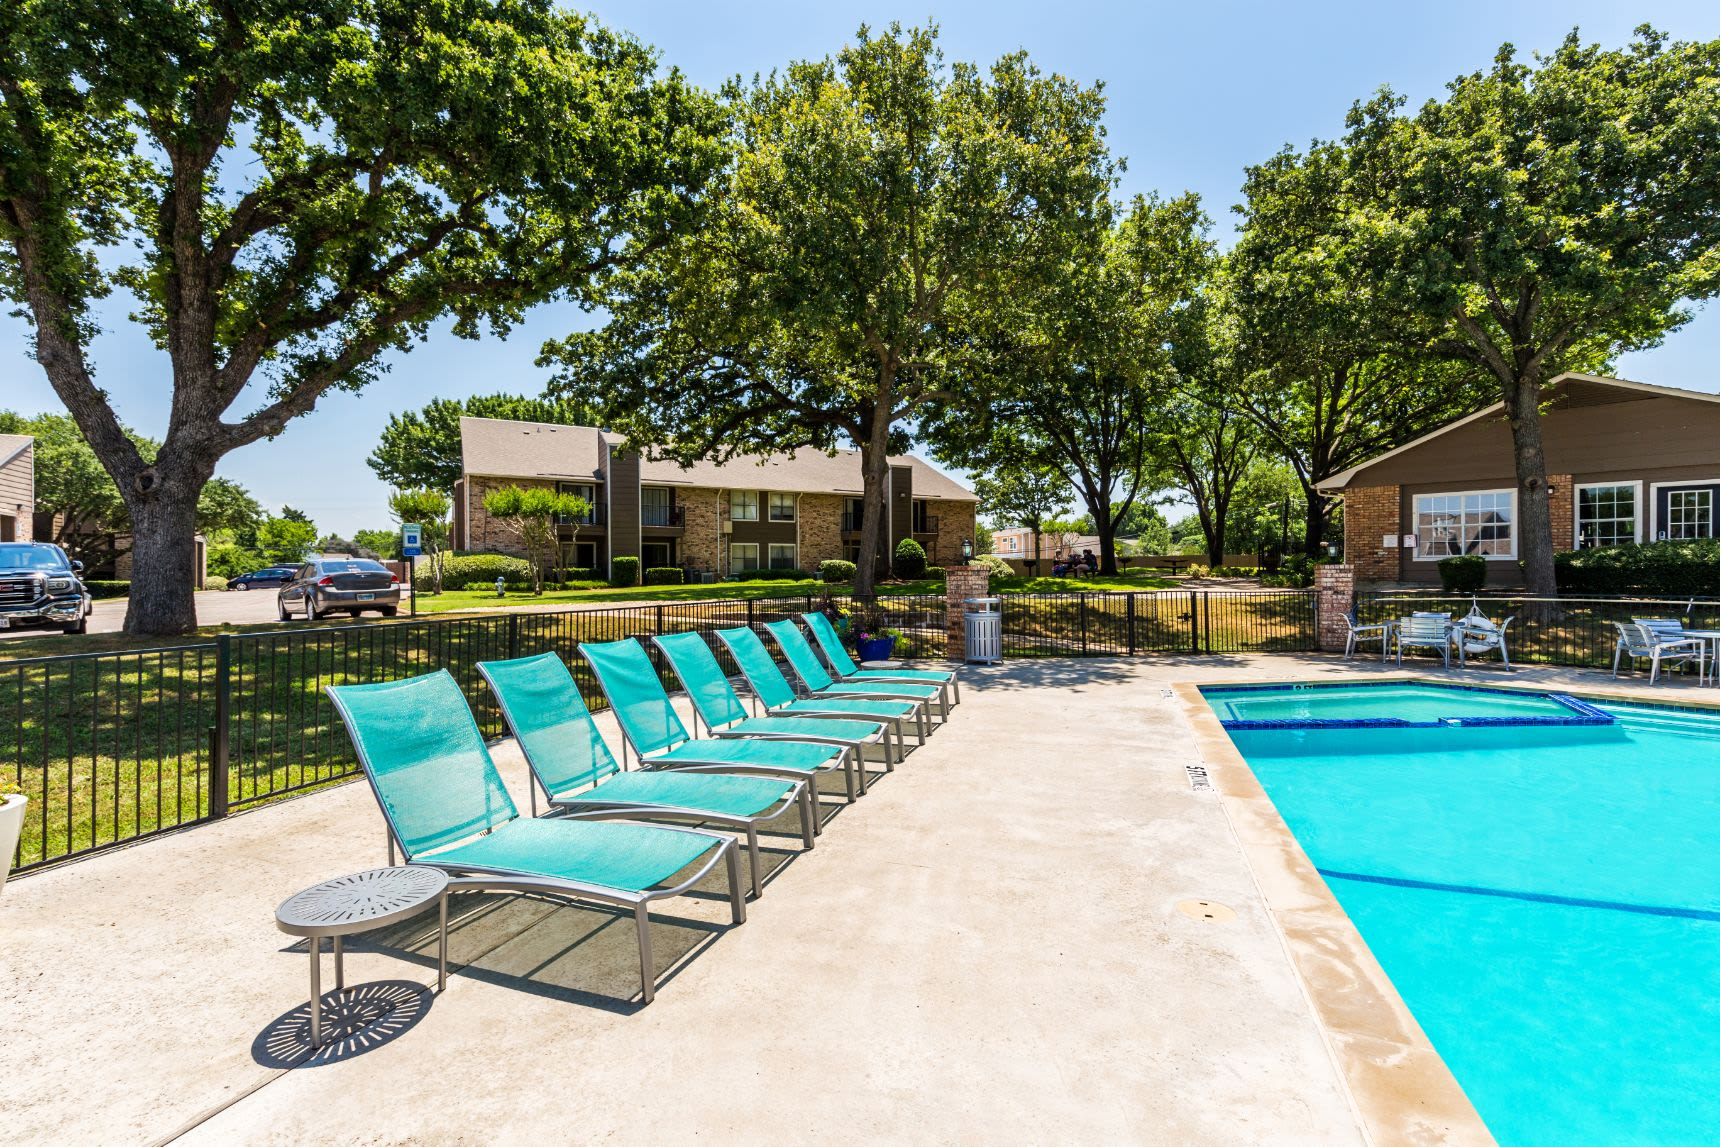 Row of sun chairs next to the pool at The Park at Flower Mound in Flower Mound, Texas